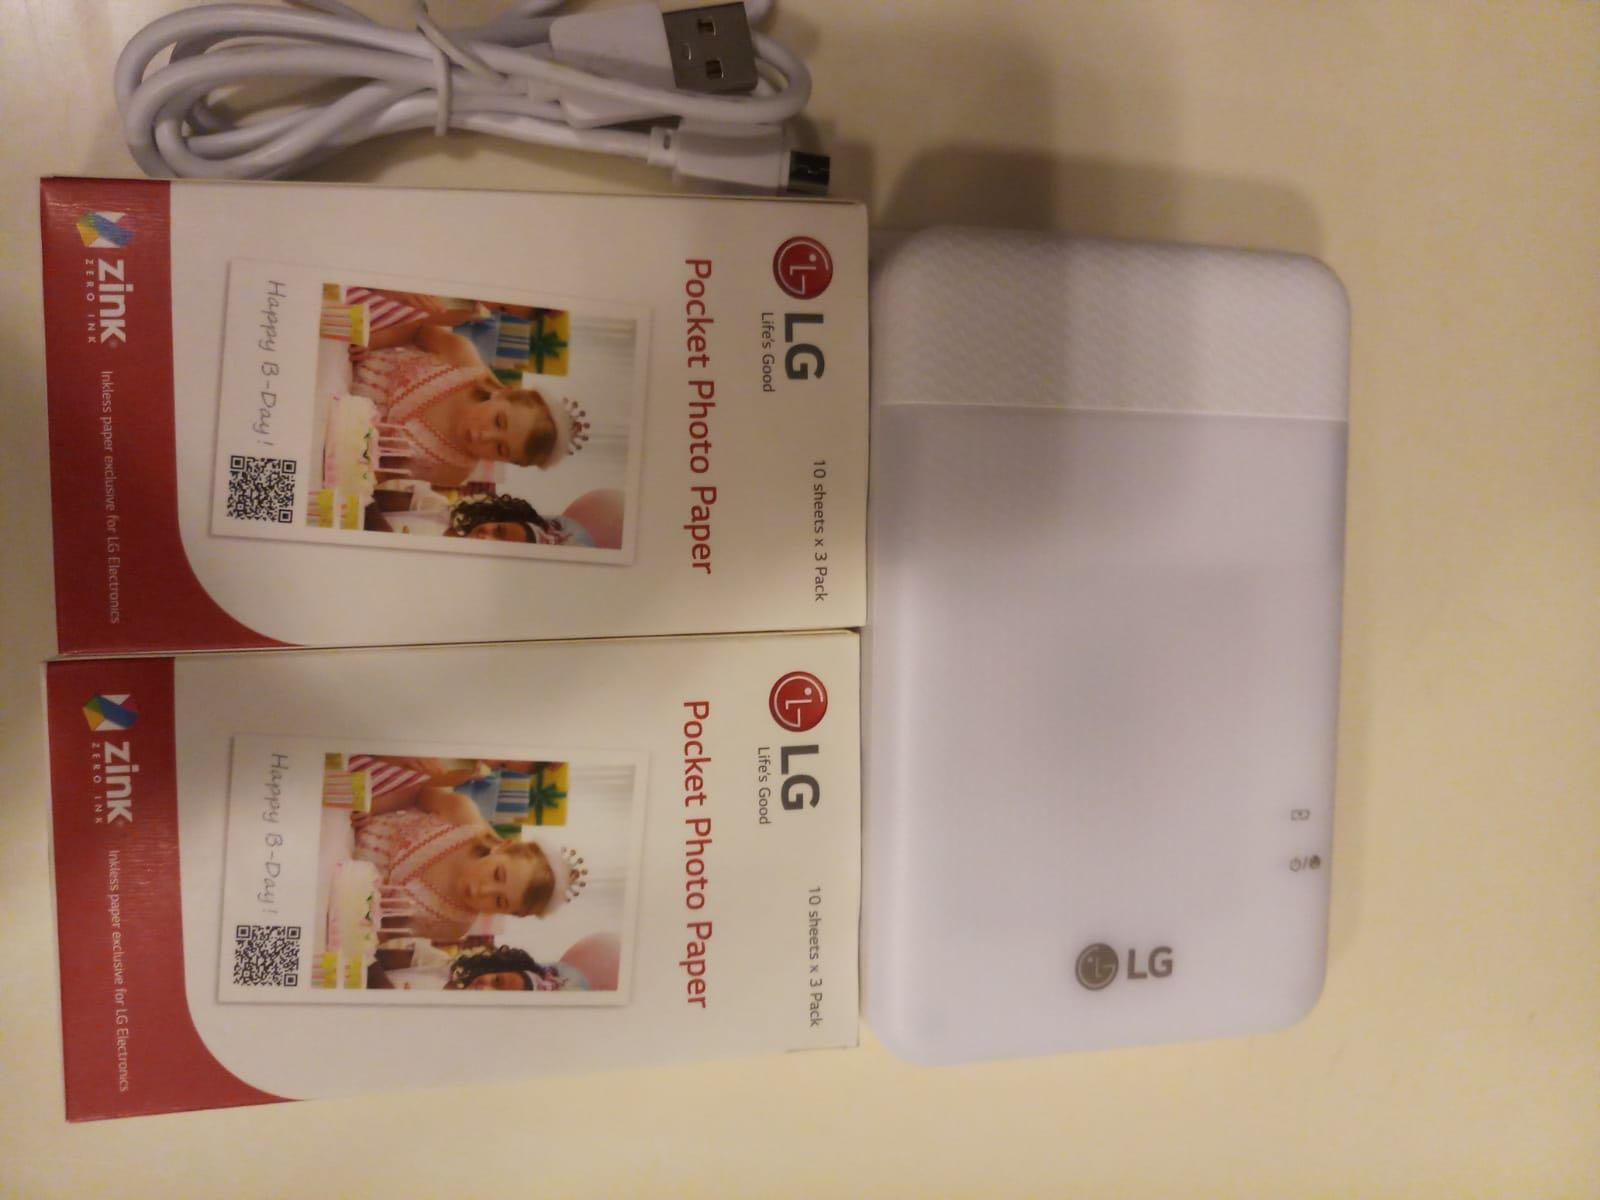 LG PD261 photo printer pocket 迷你打印機 照片 including 60 photo paper